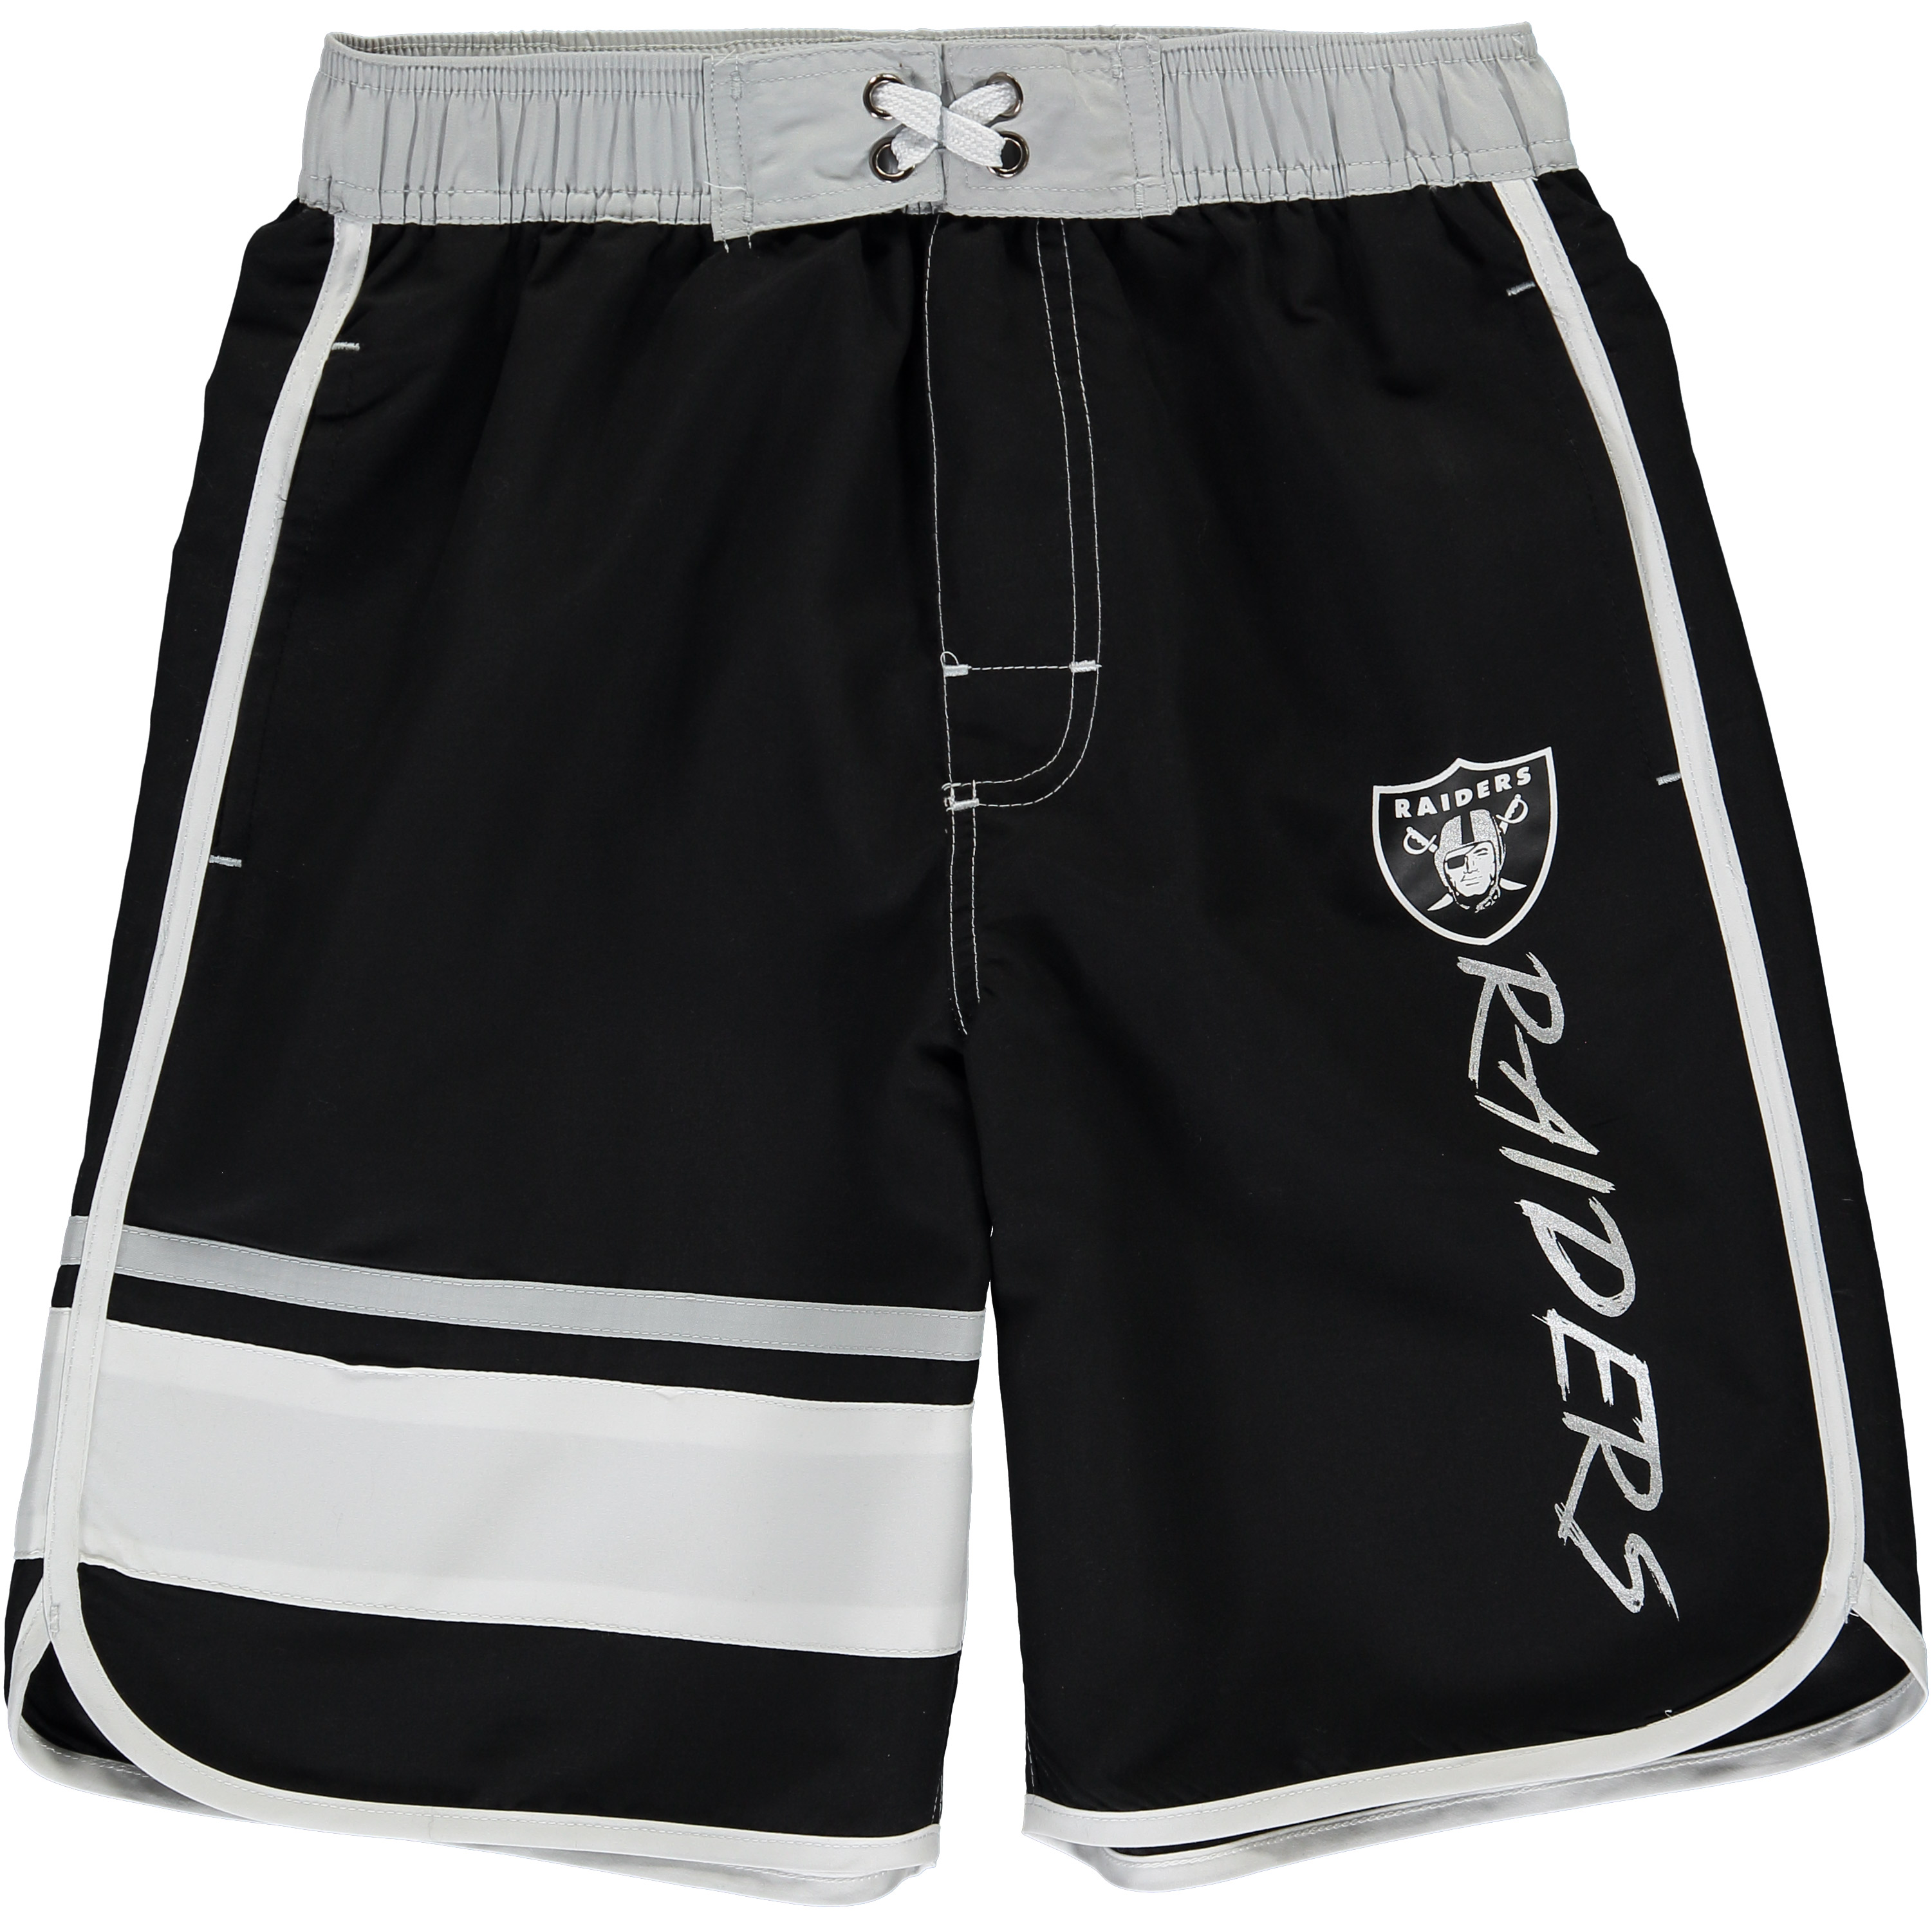 Oakland Raiders Youth Color Block Swim Trunks - Black/White